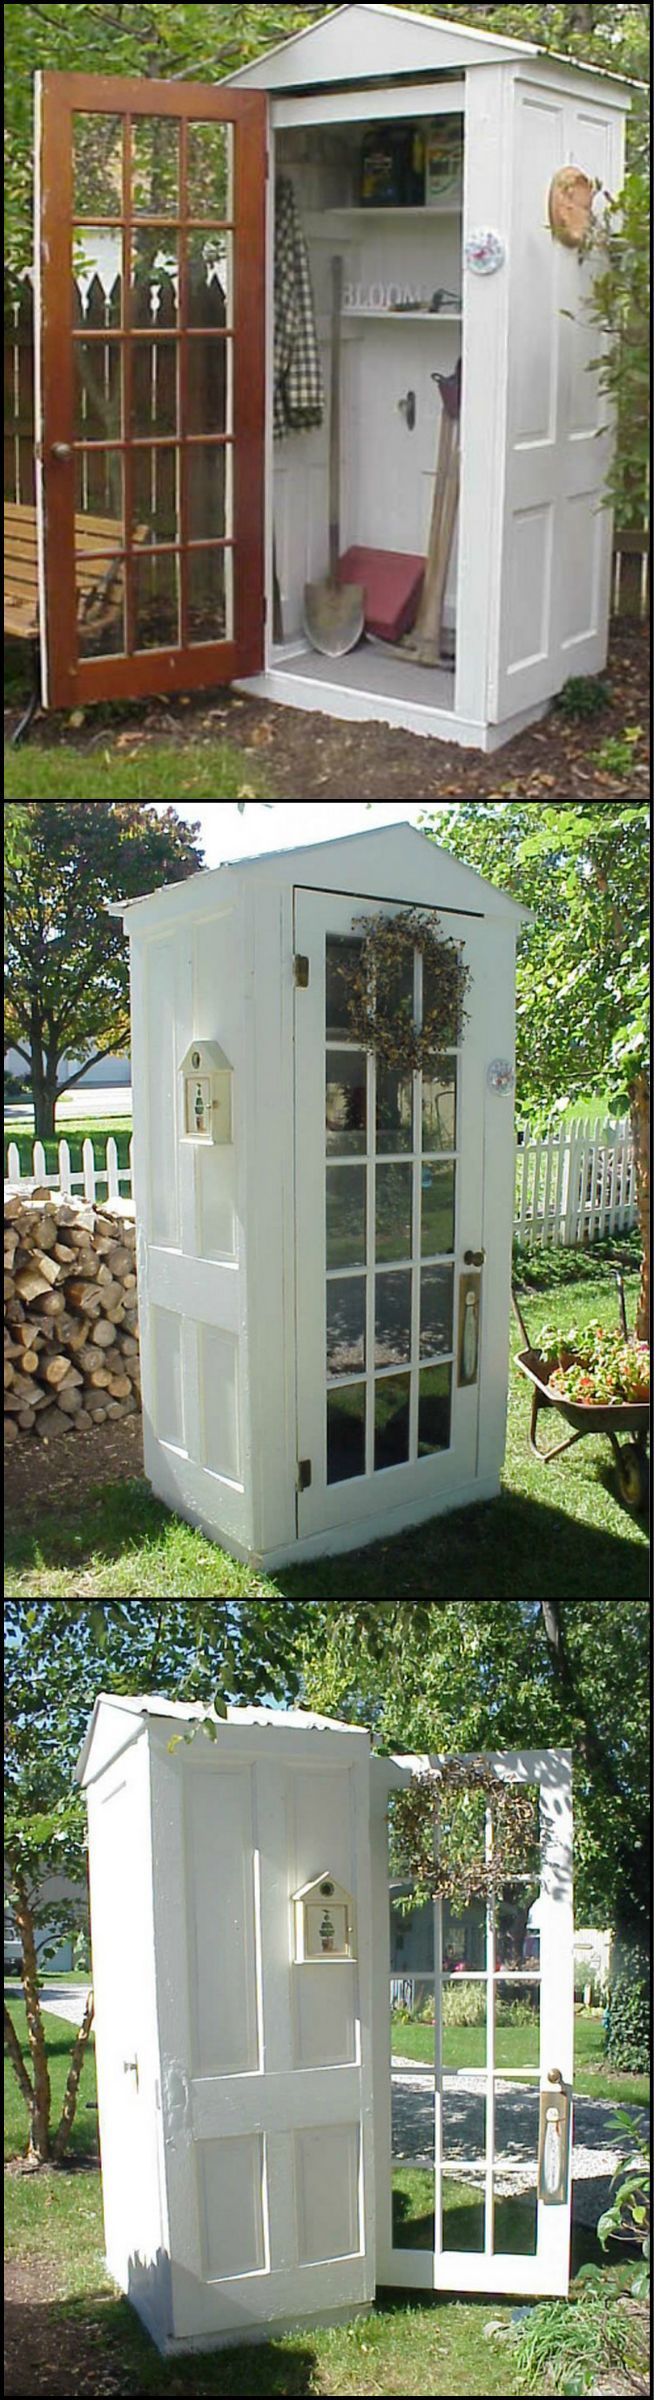 How To Build A Tool Shed From Repurposed Doors  http://theownerbuildernetwork.co/5ws9  This little shed is a great way to protect your garden tools and recycle some old doors that would otherwise become landfill.